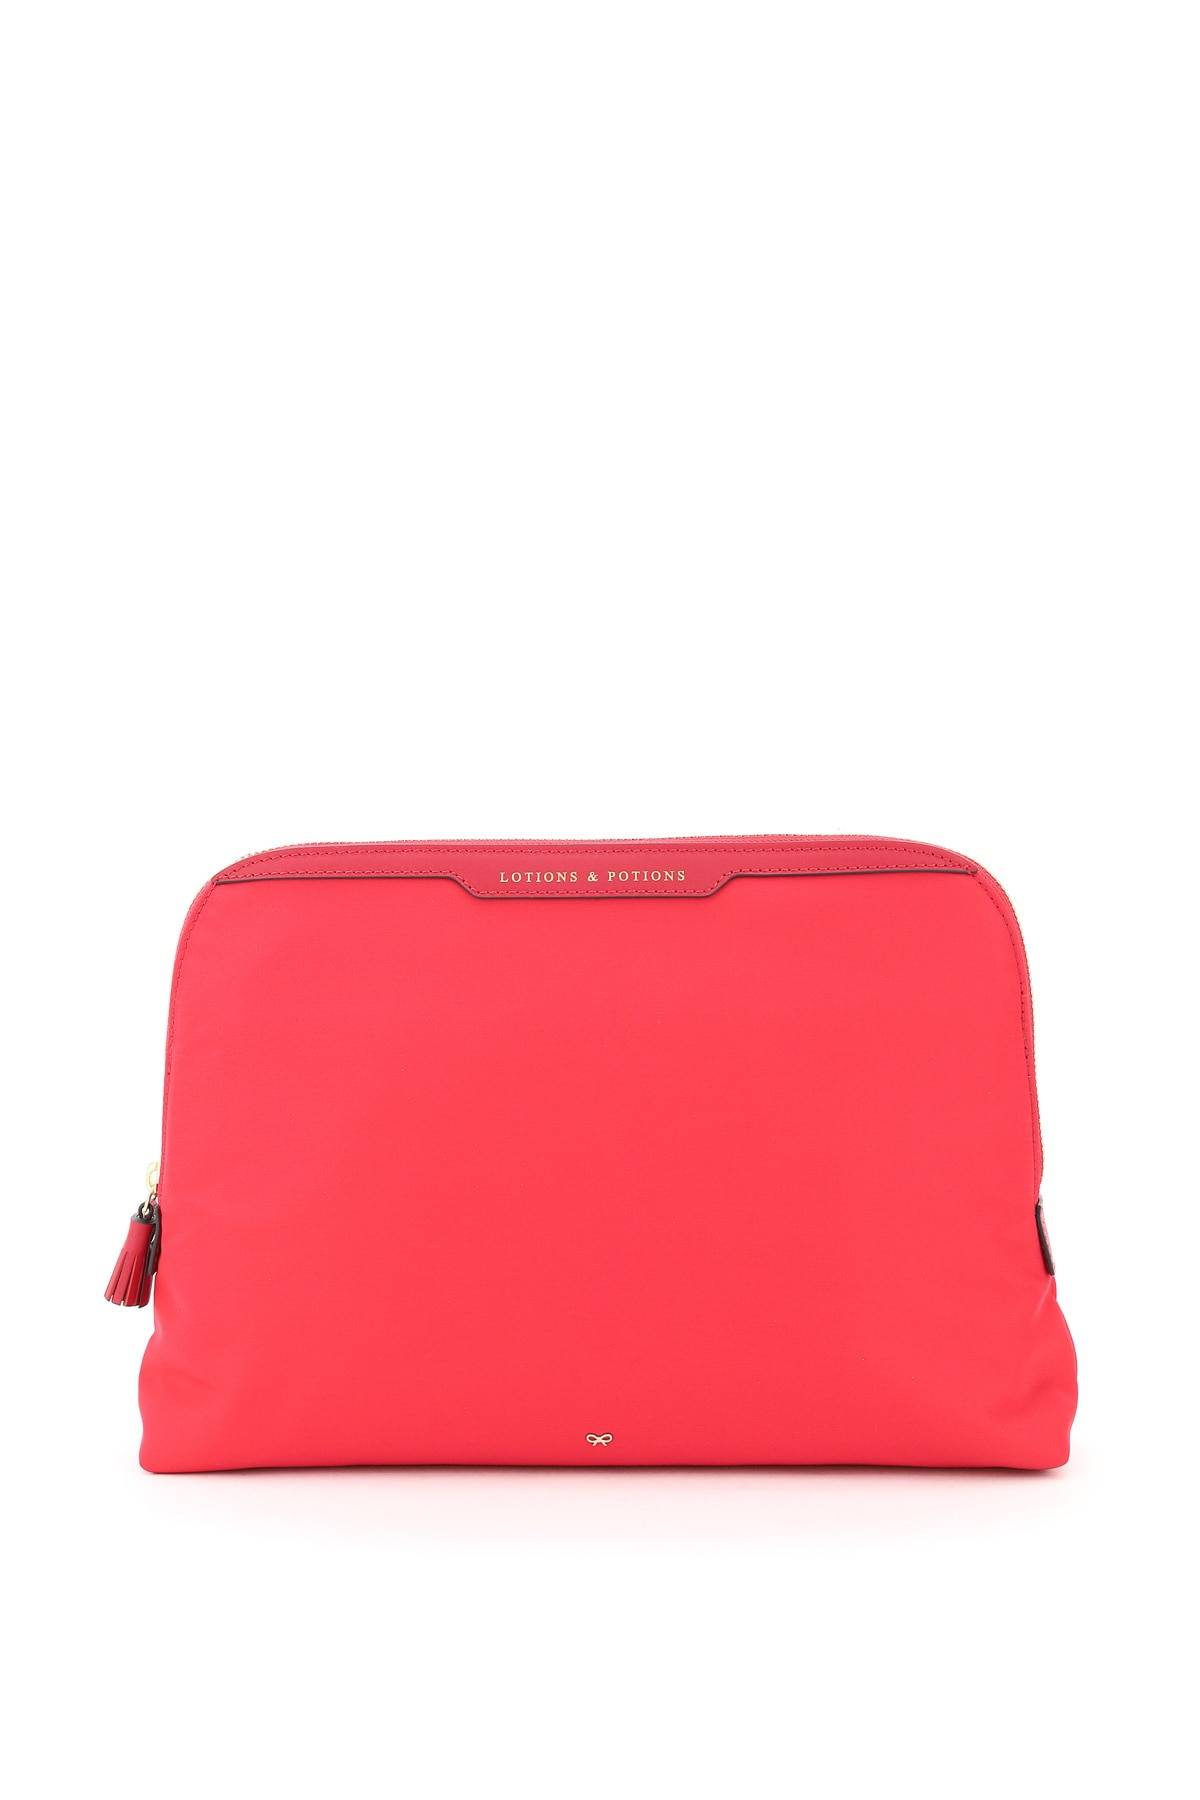 anya hindmarch pouch lotions and potions os fuxia, rosa tecnico, pelle